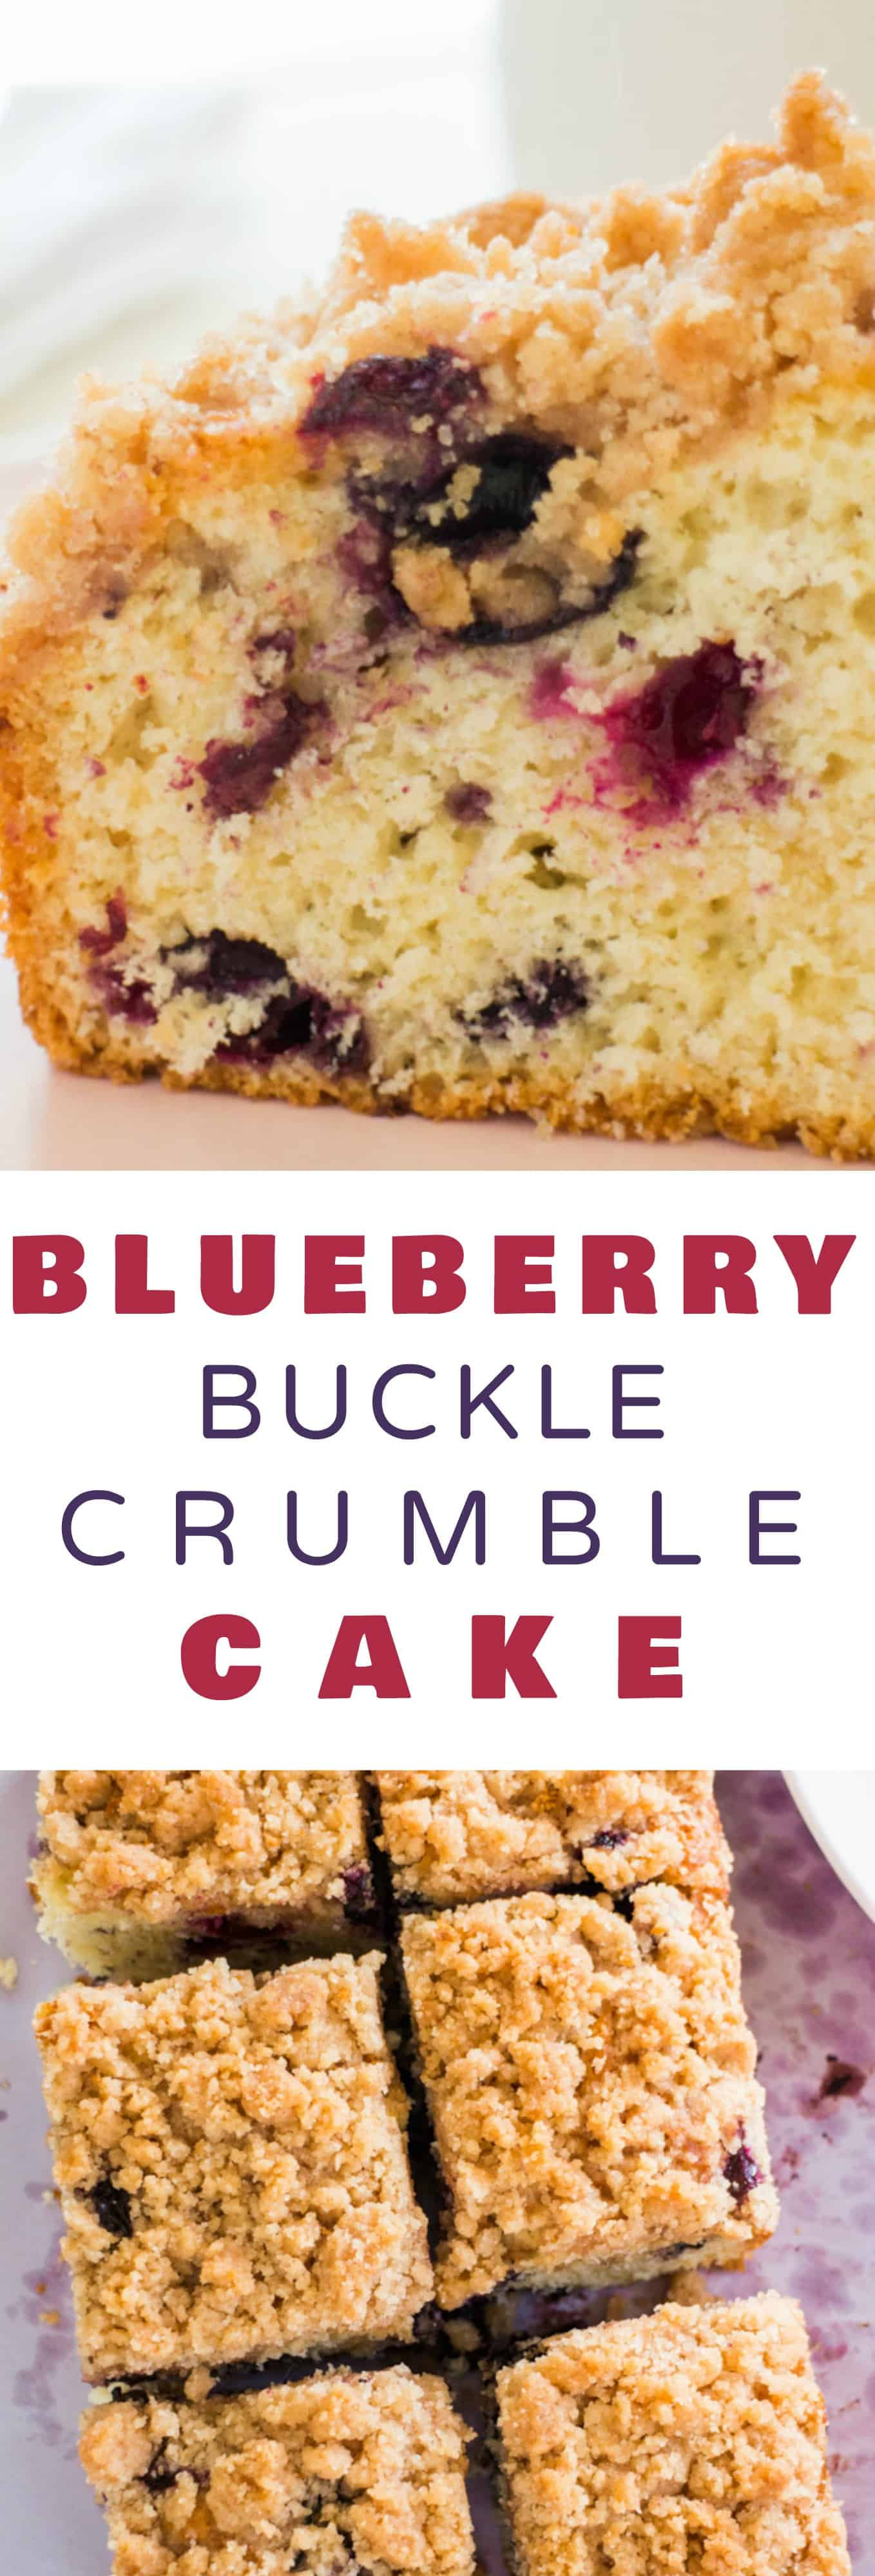 Easy to make Blueberry Buckle that tastes just like Coffee Cake!   This moist cake recipe has a yummy cinnamon streusel Topping that my family thinks is the best!  Enjoy for breakfast or dessert.  Made in a 8x8 pan, but can be doubled in a 9x13.